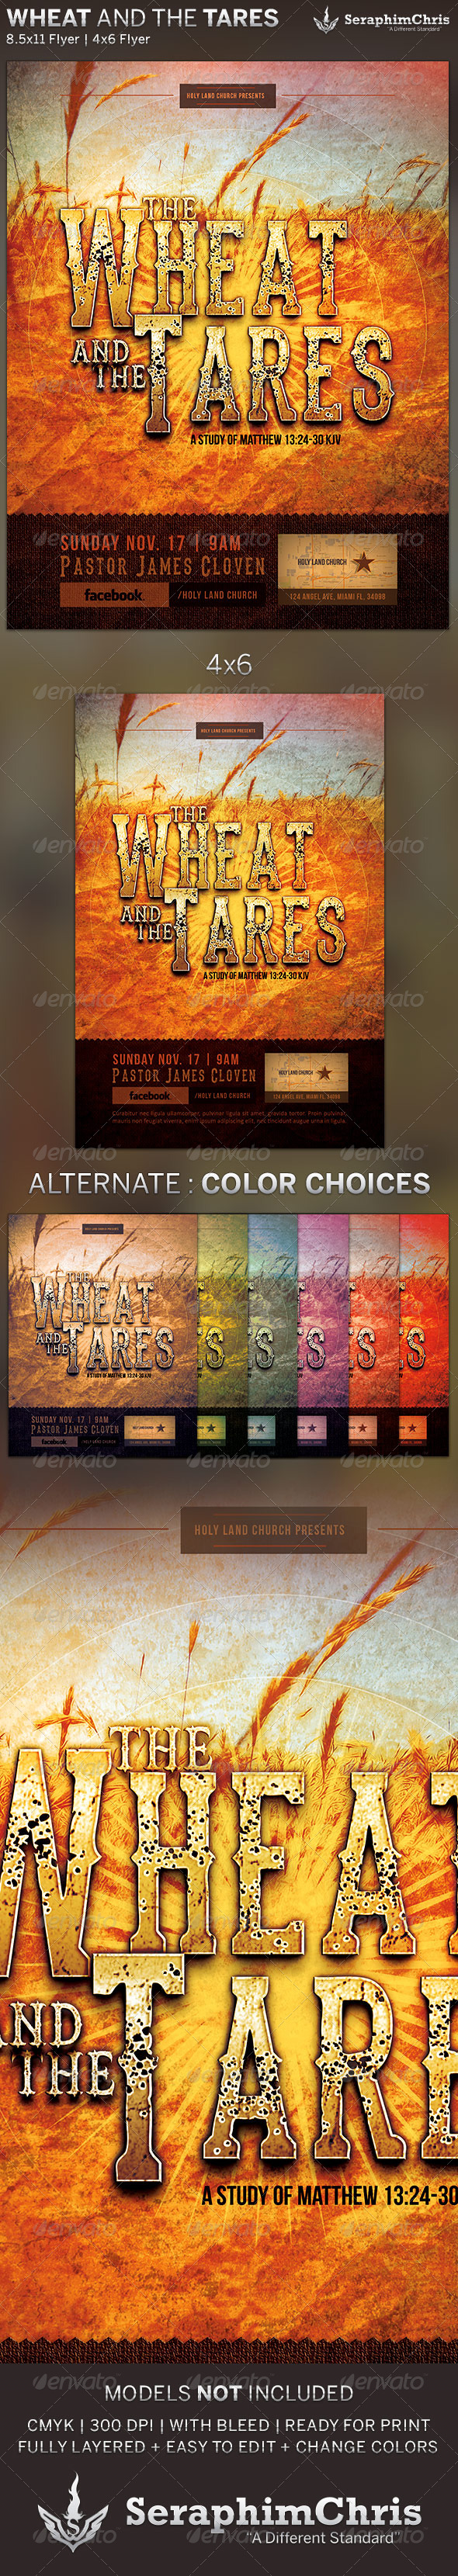 GraphicRiver Wheat and the Tares Church Flyer Template 5641312